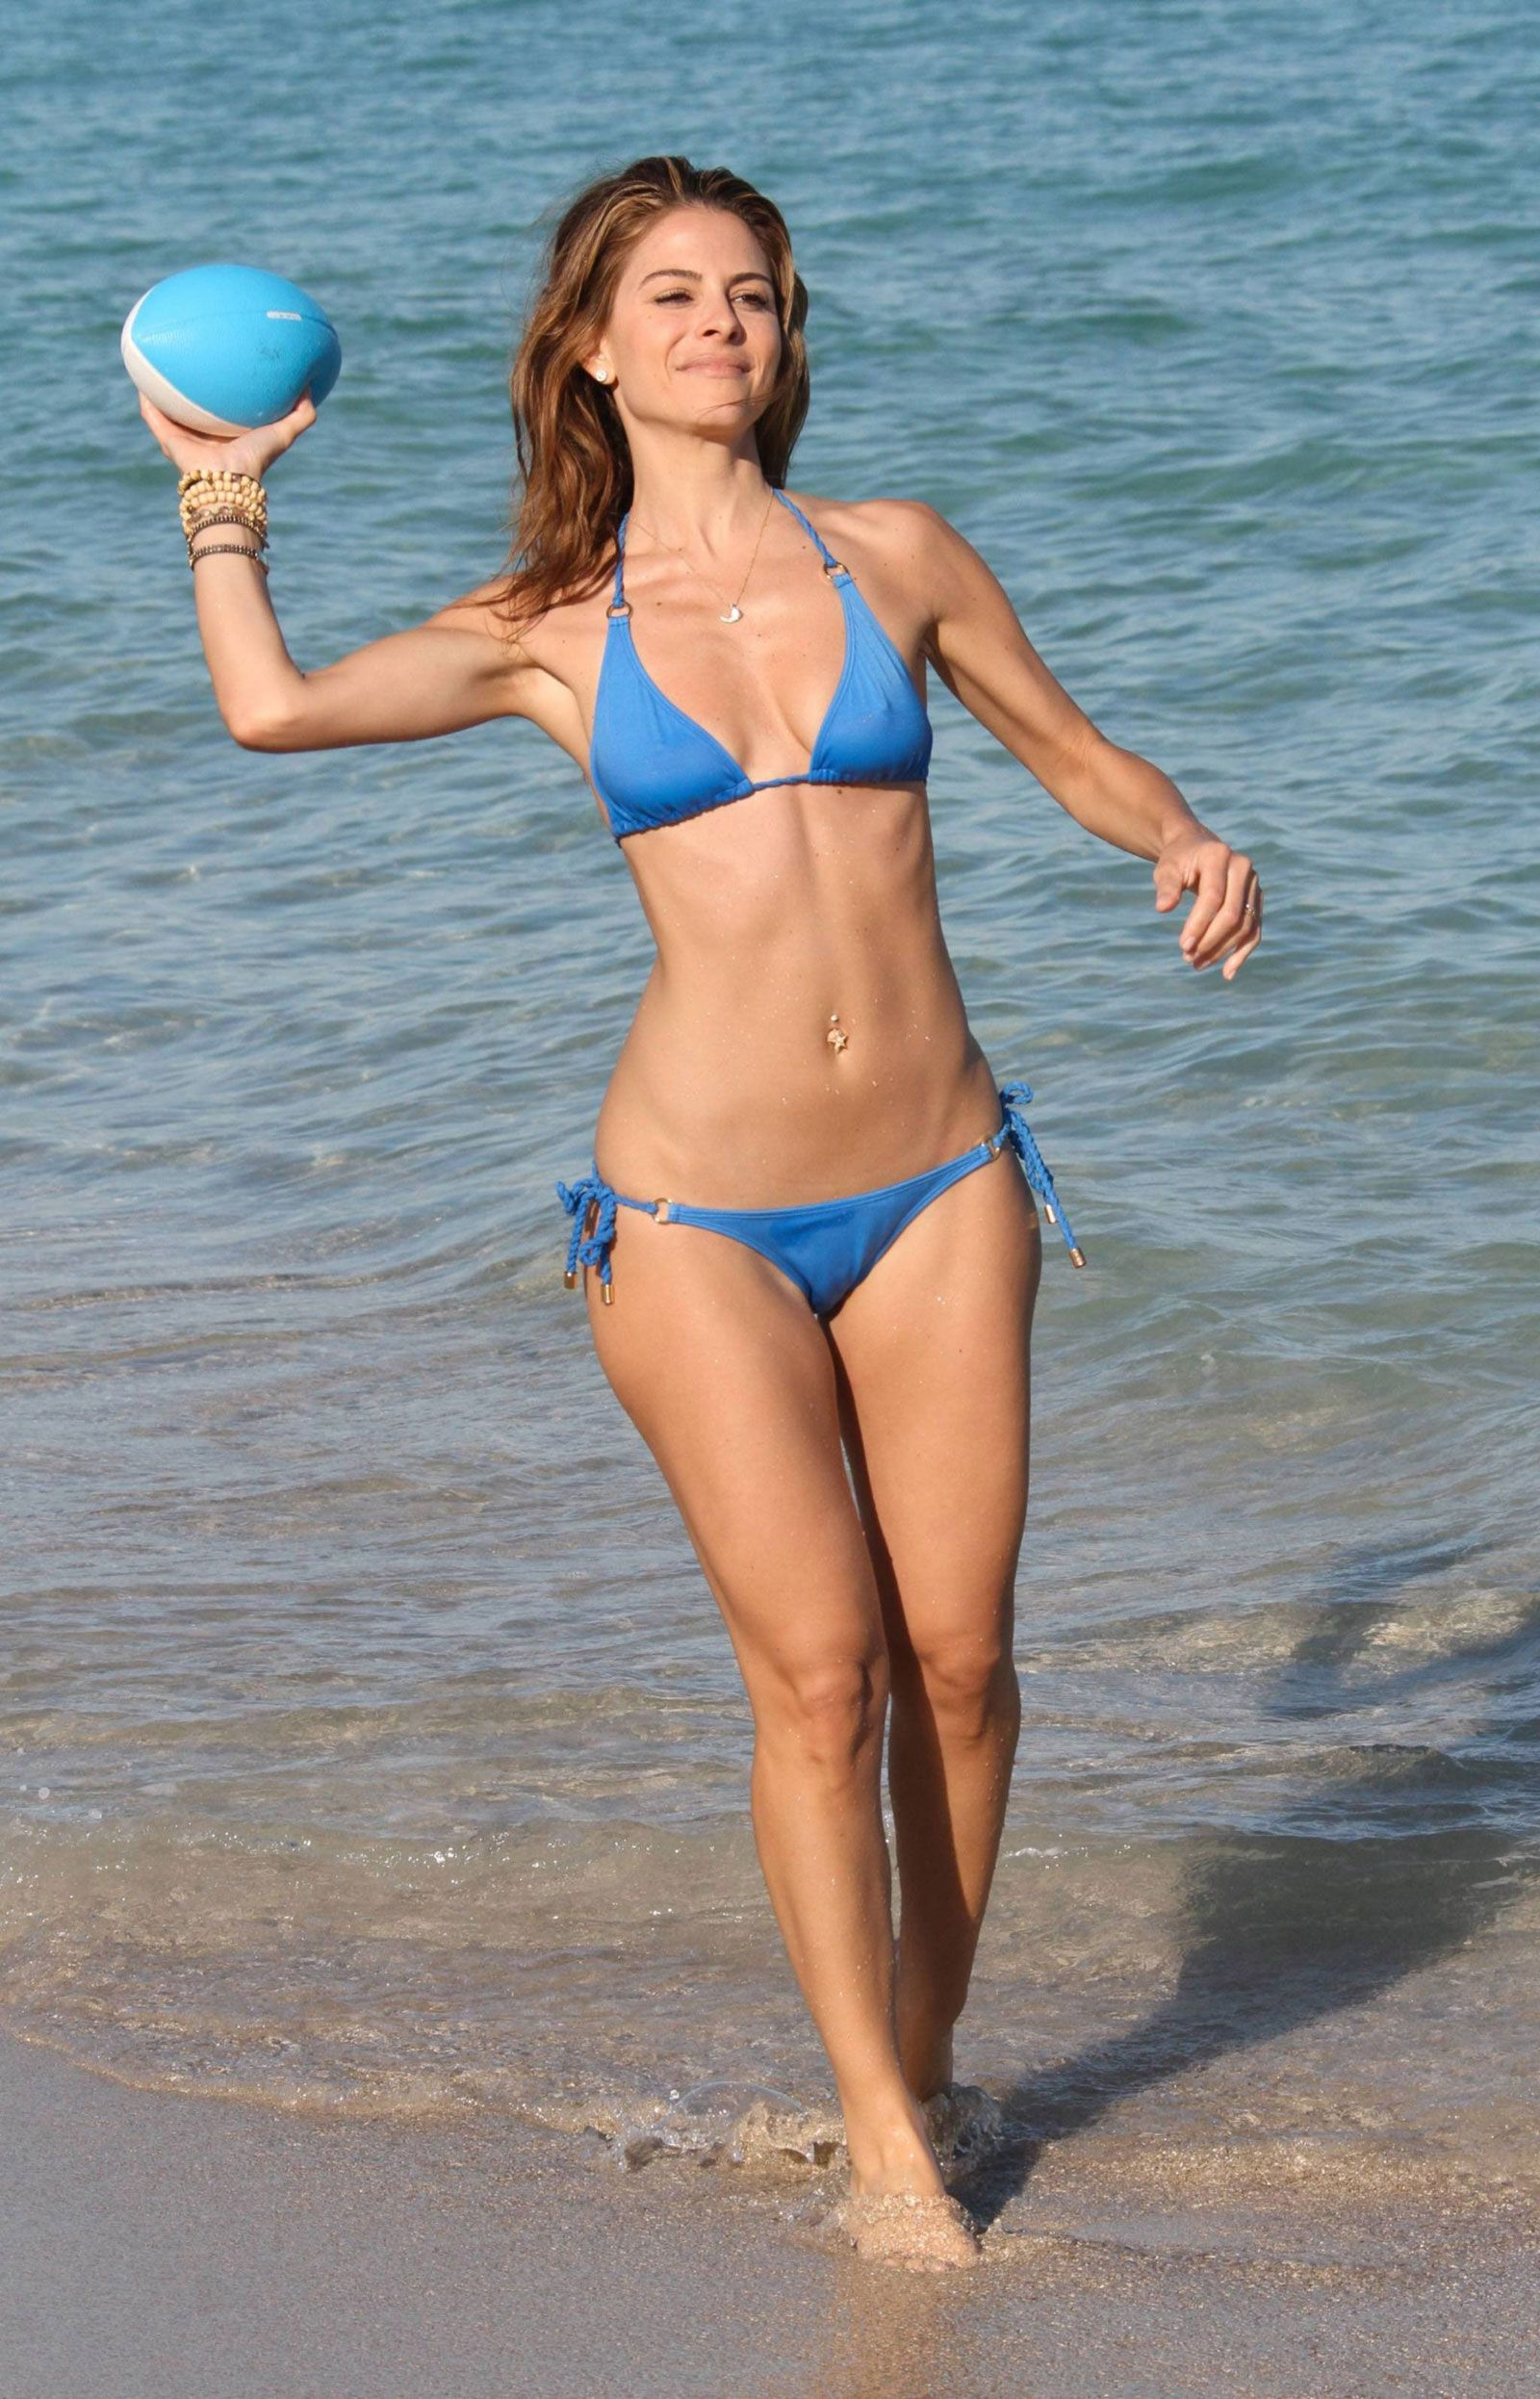 Maria menounos bikini photos tv host hits beach Maria  : eadab4161f8083eb7078c5318242218c from www.pinterest.com size 1600 x 2492 jpeg 613kB